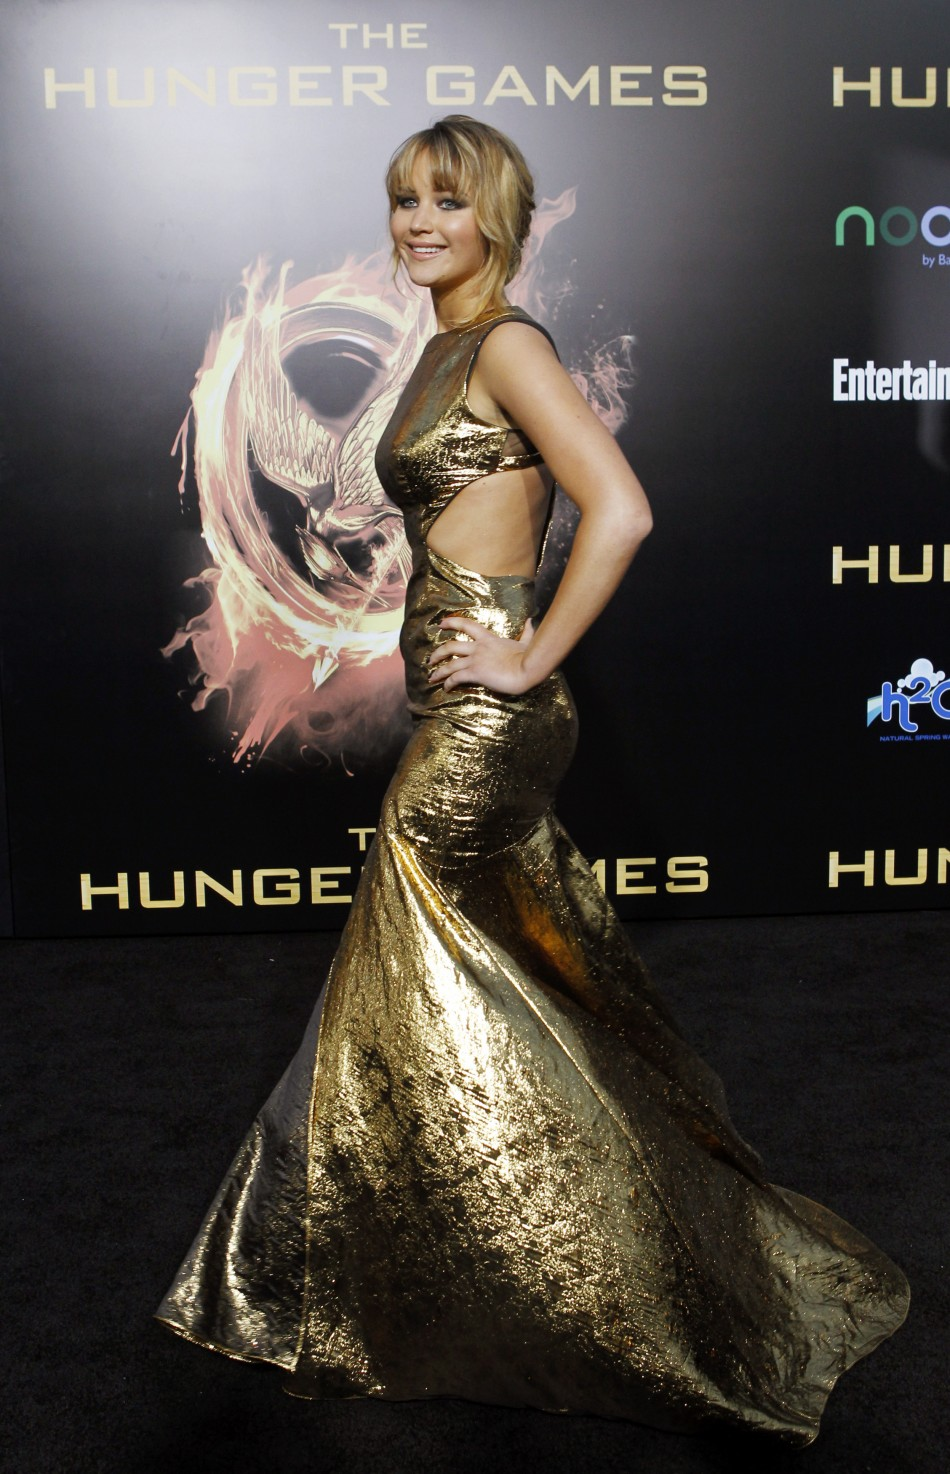 Cast member Jennifer Lawrence poses at the premiere of quotThe Hunger Gamesquot in Los Angeles